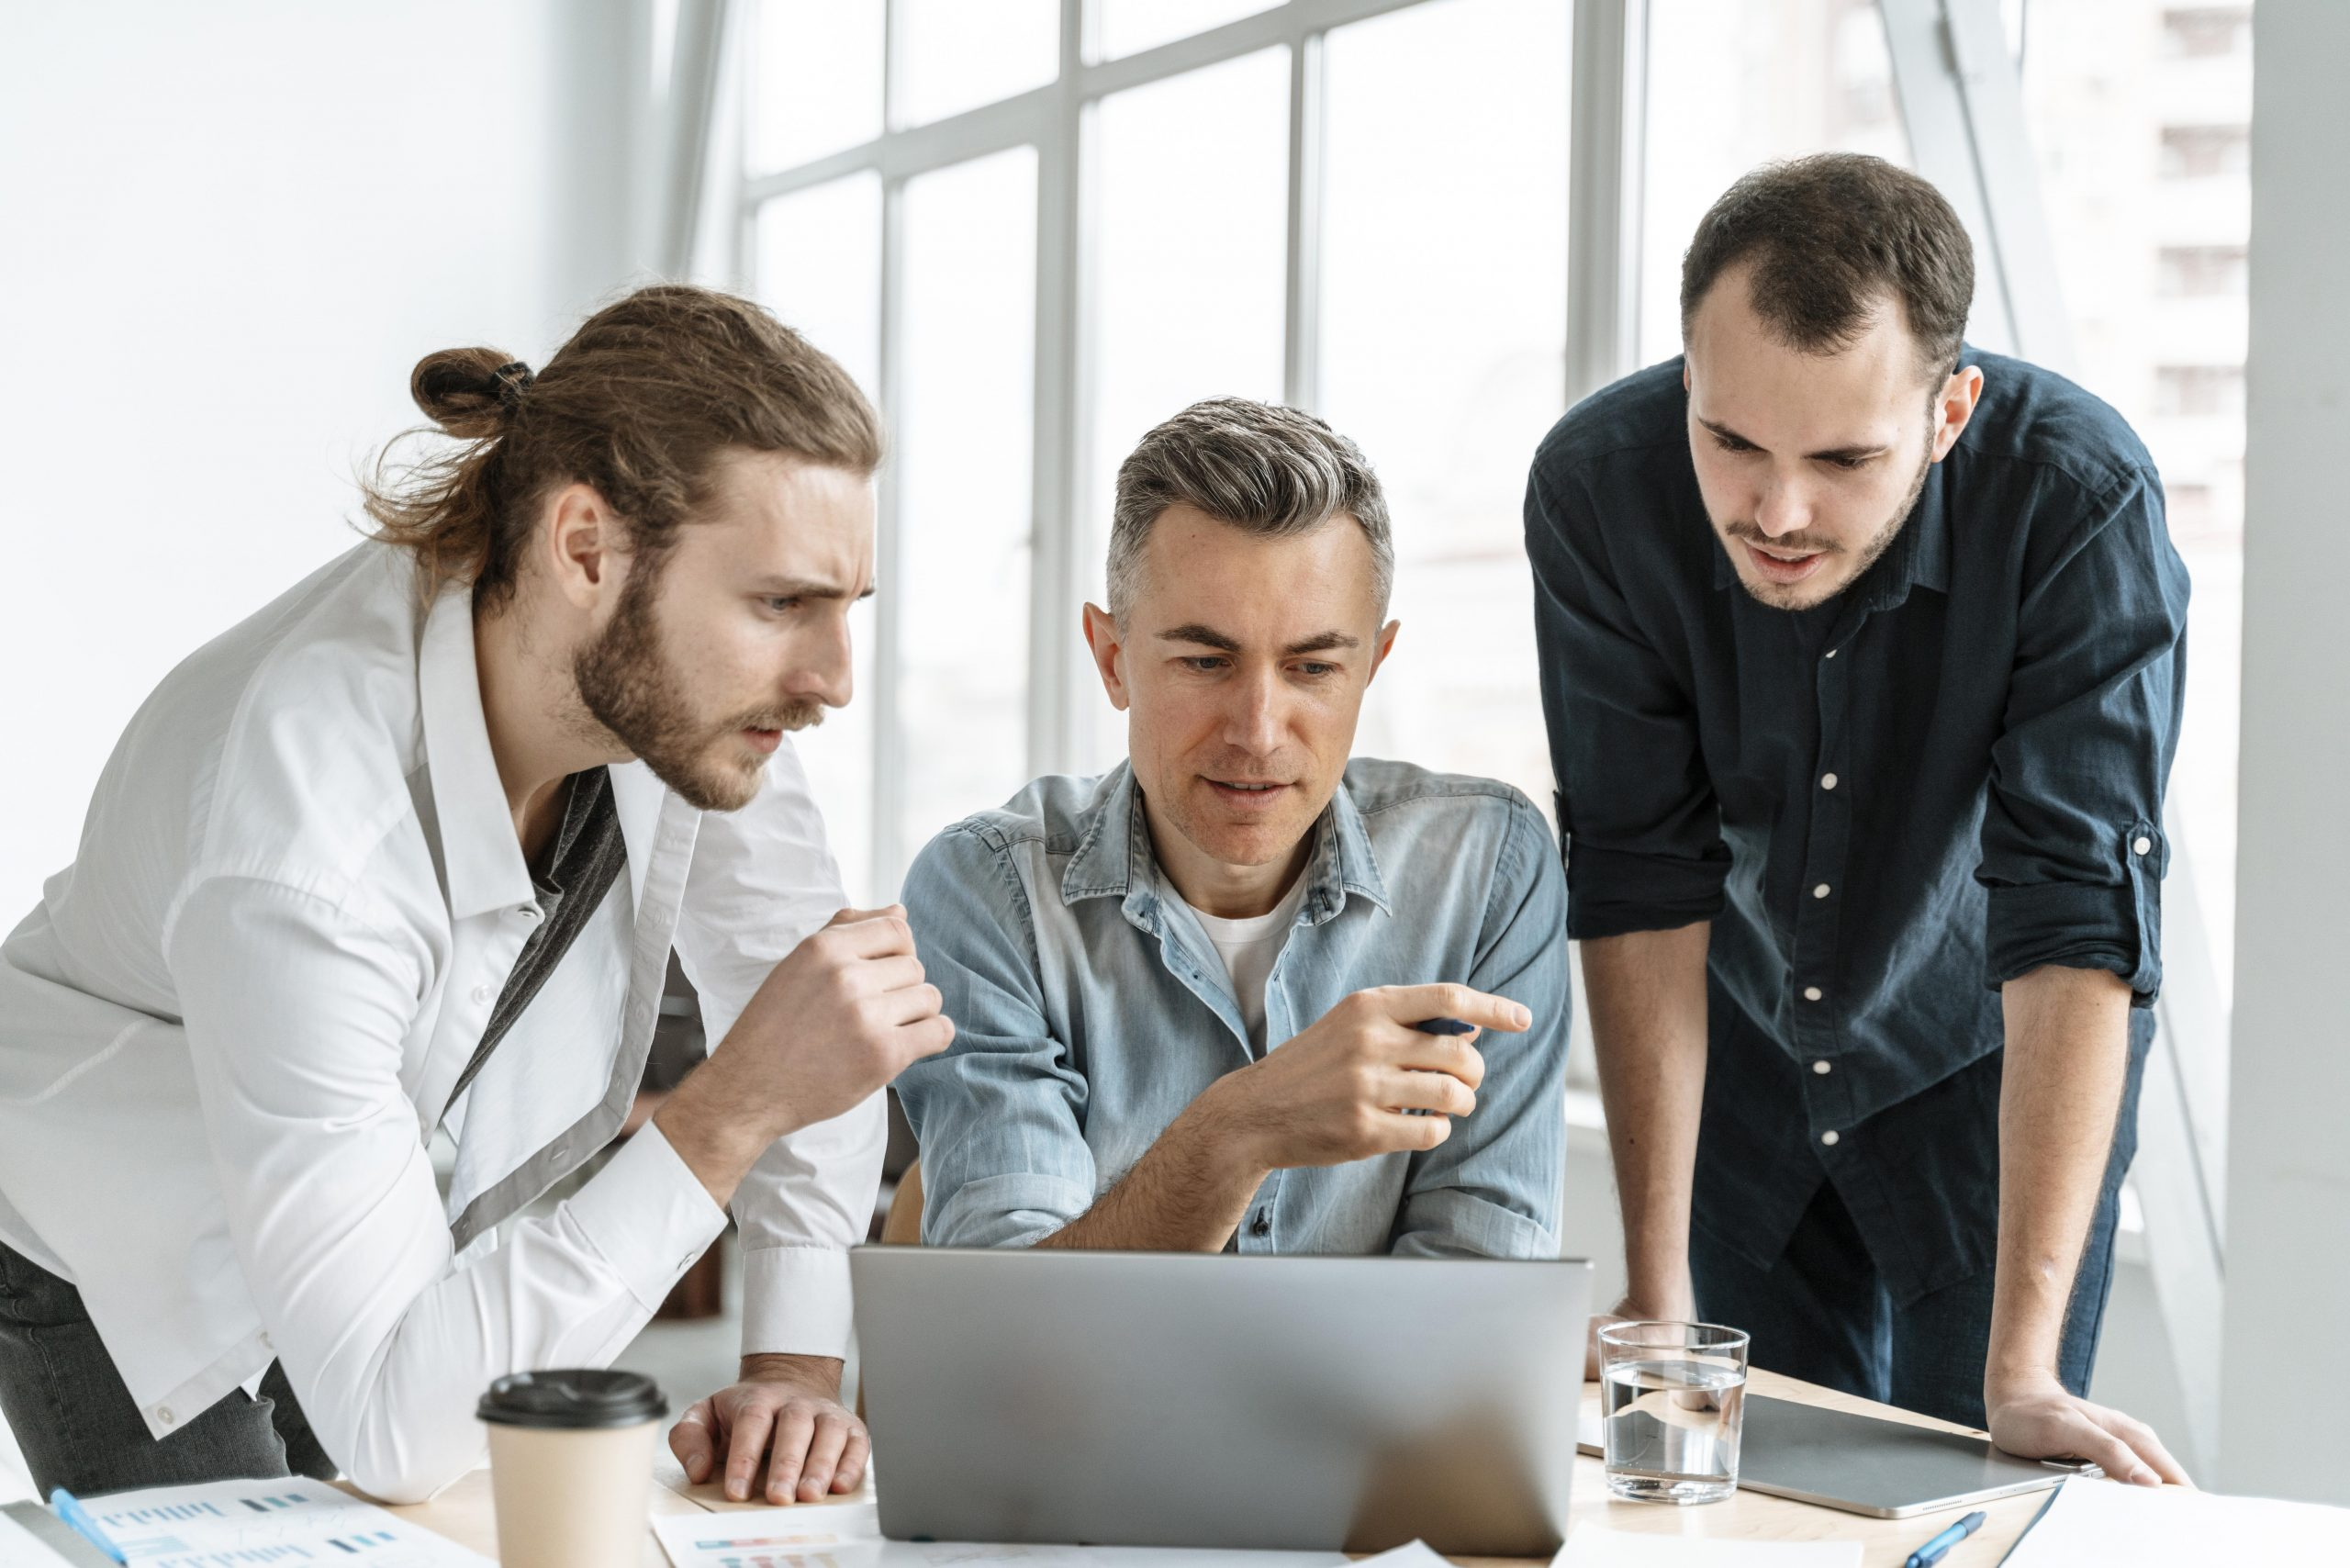 Three men meeting in conference room to talk about business plan